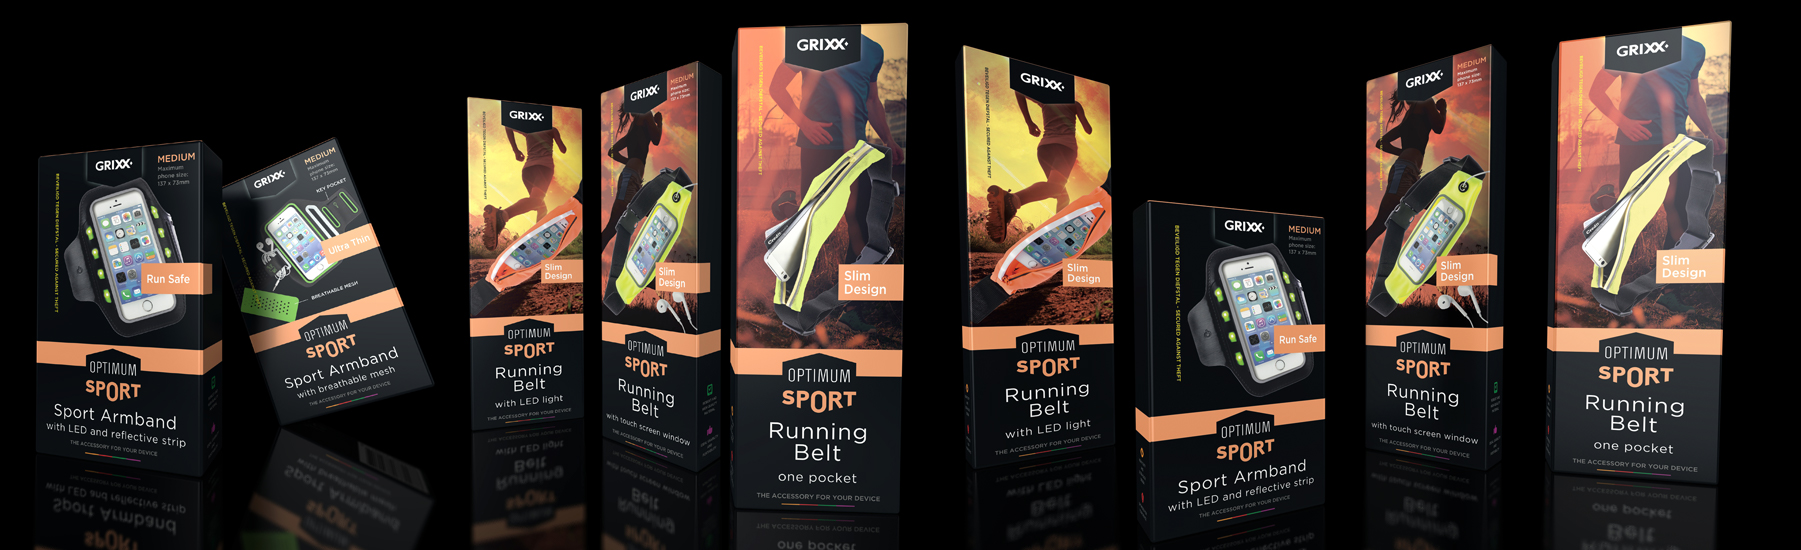 grixx optimum producten